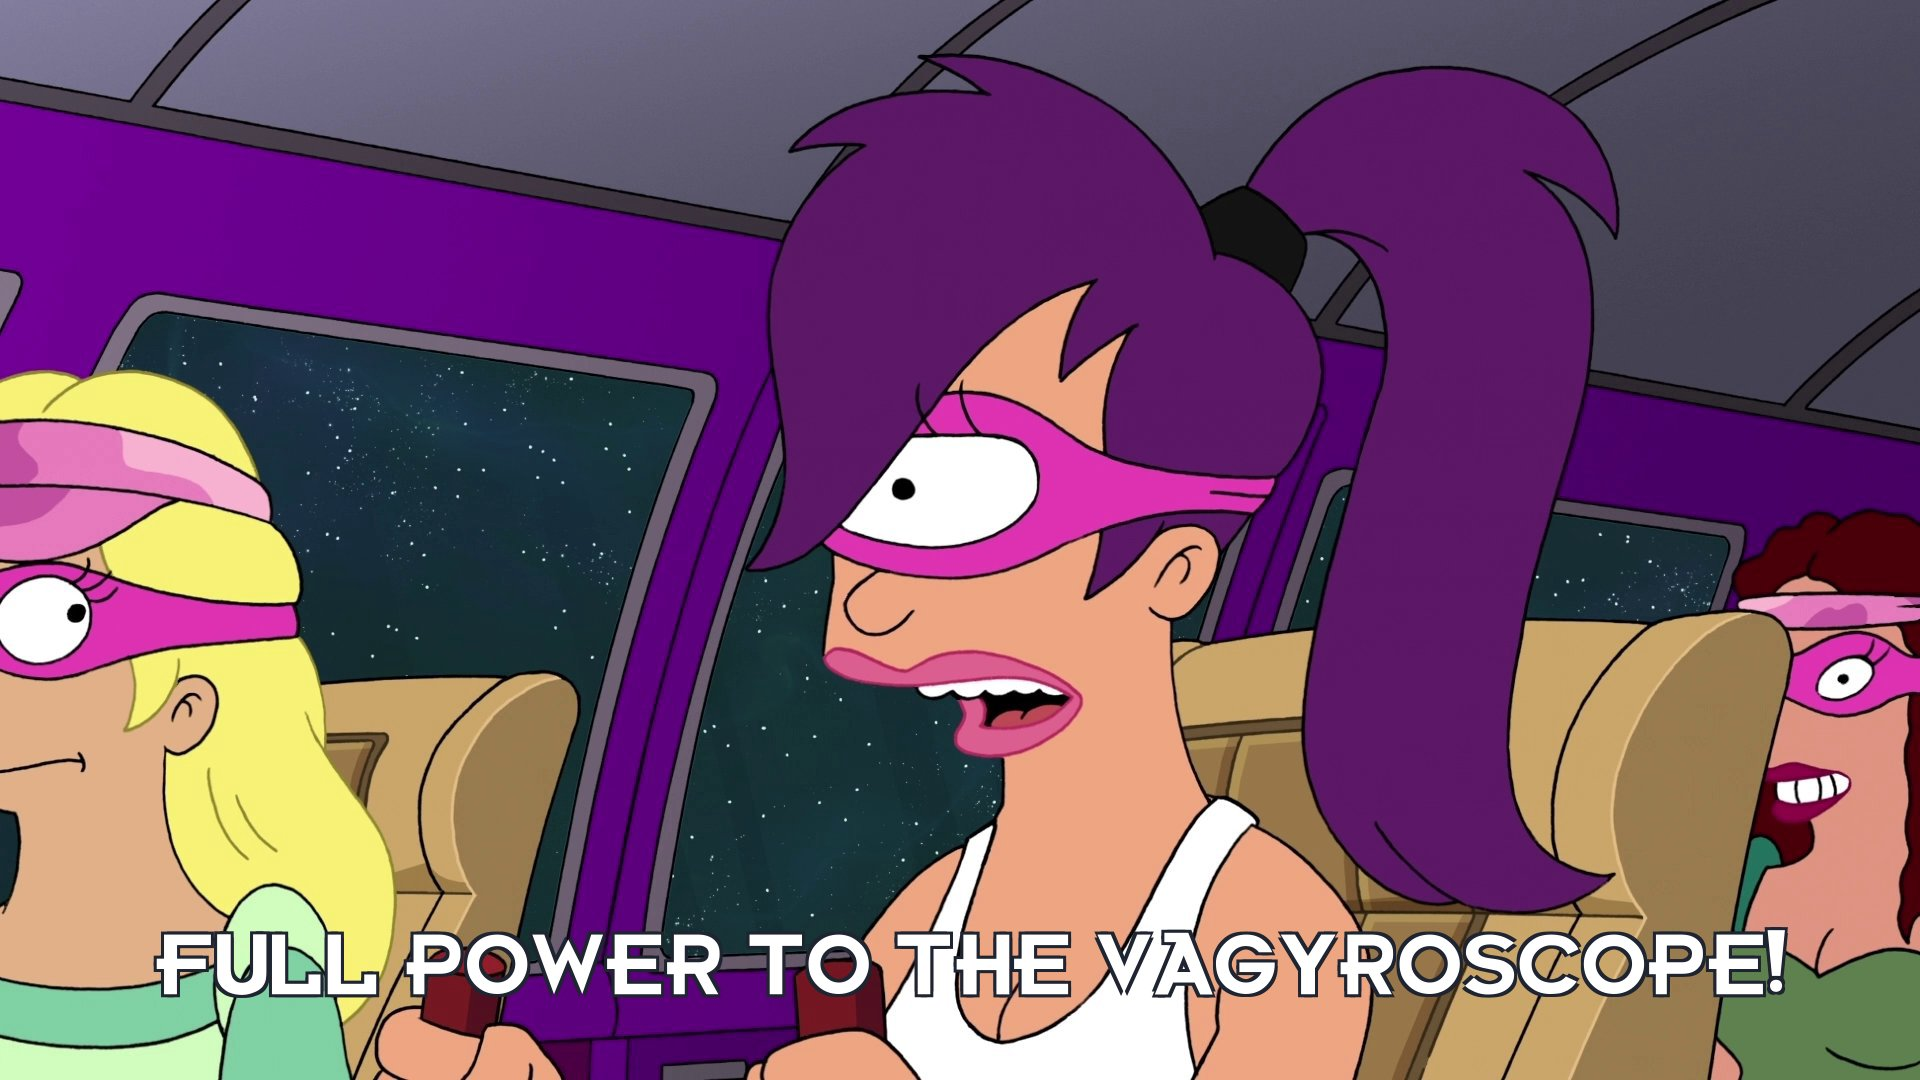 Turanga Leela: Full power to the vagyroscope!